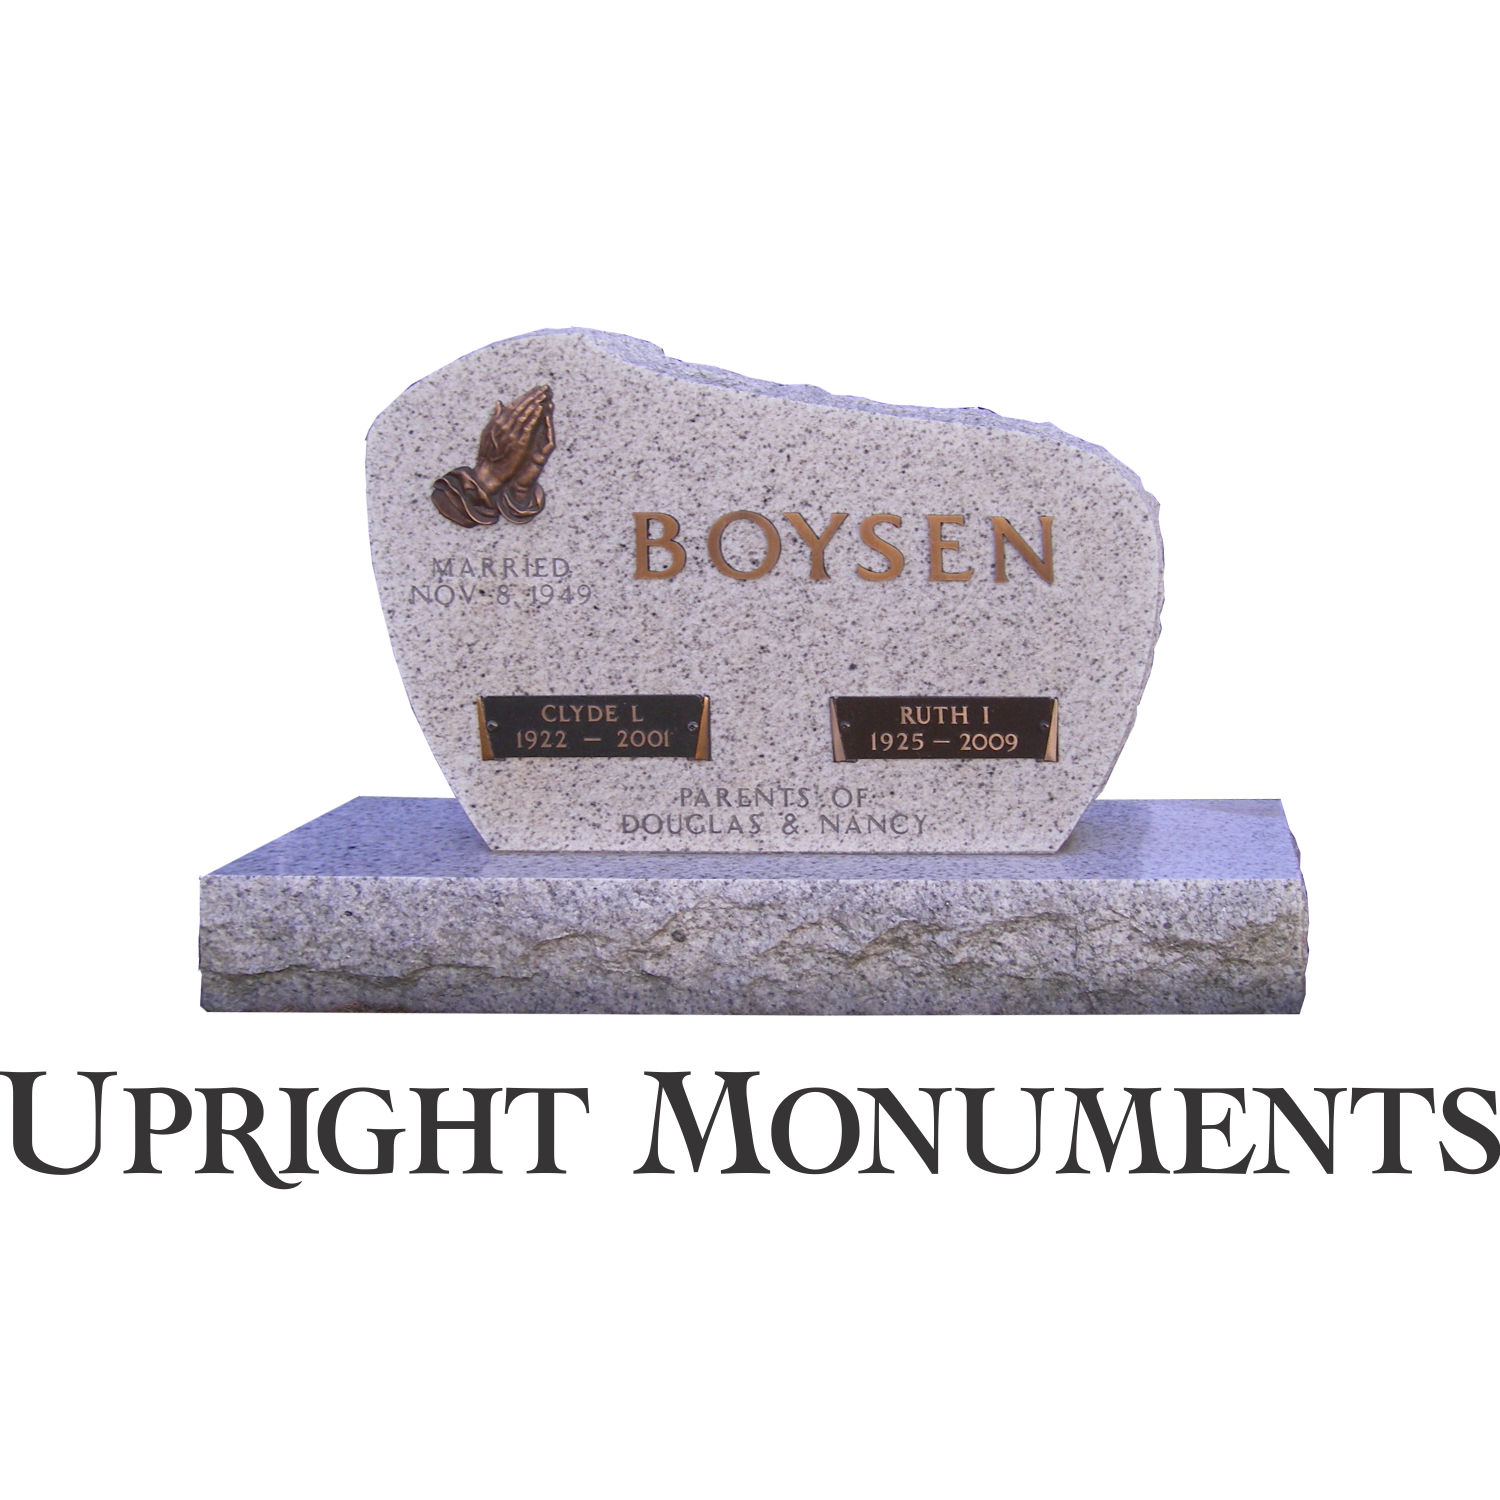 Upright Monuments